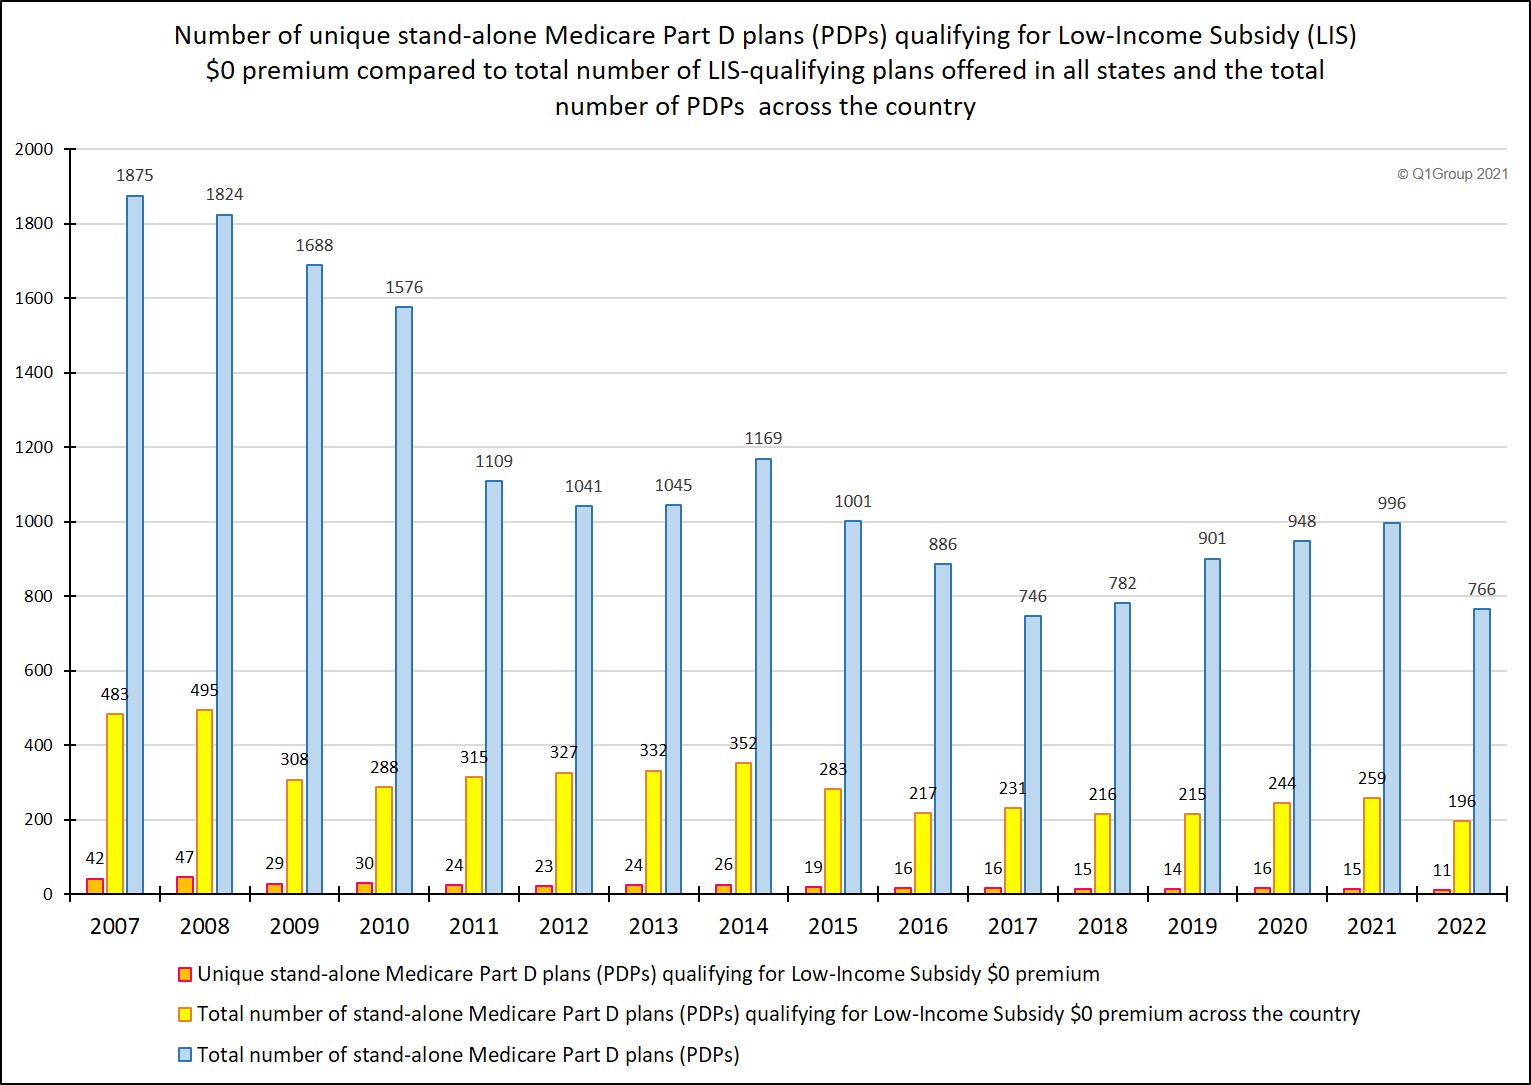 total LIS qualifying PDPs compared to total PDPs